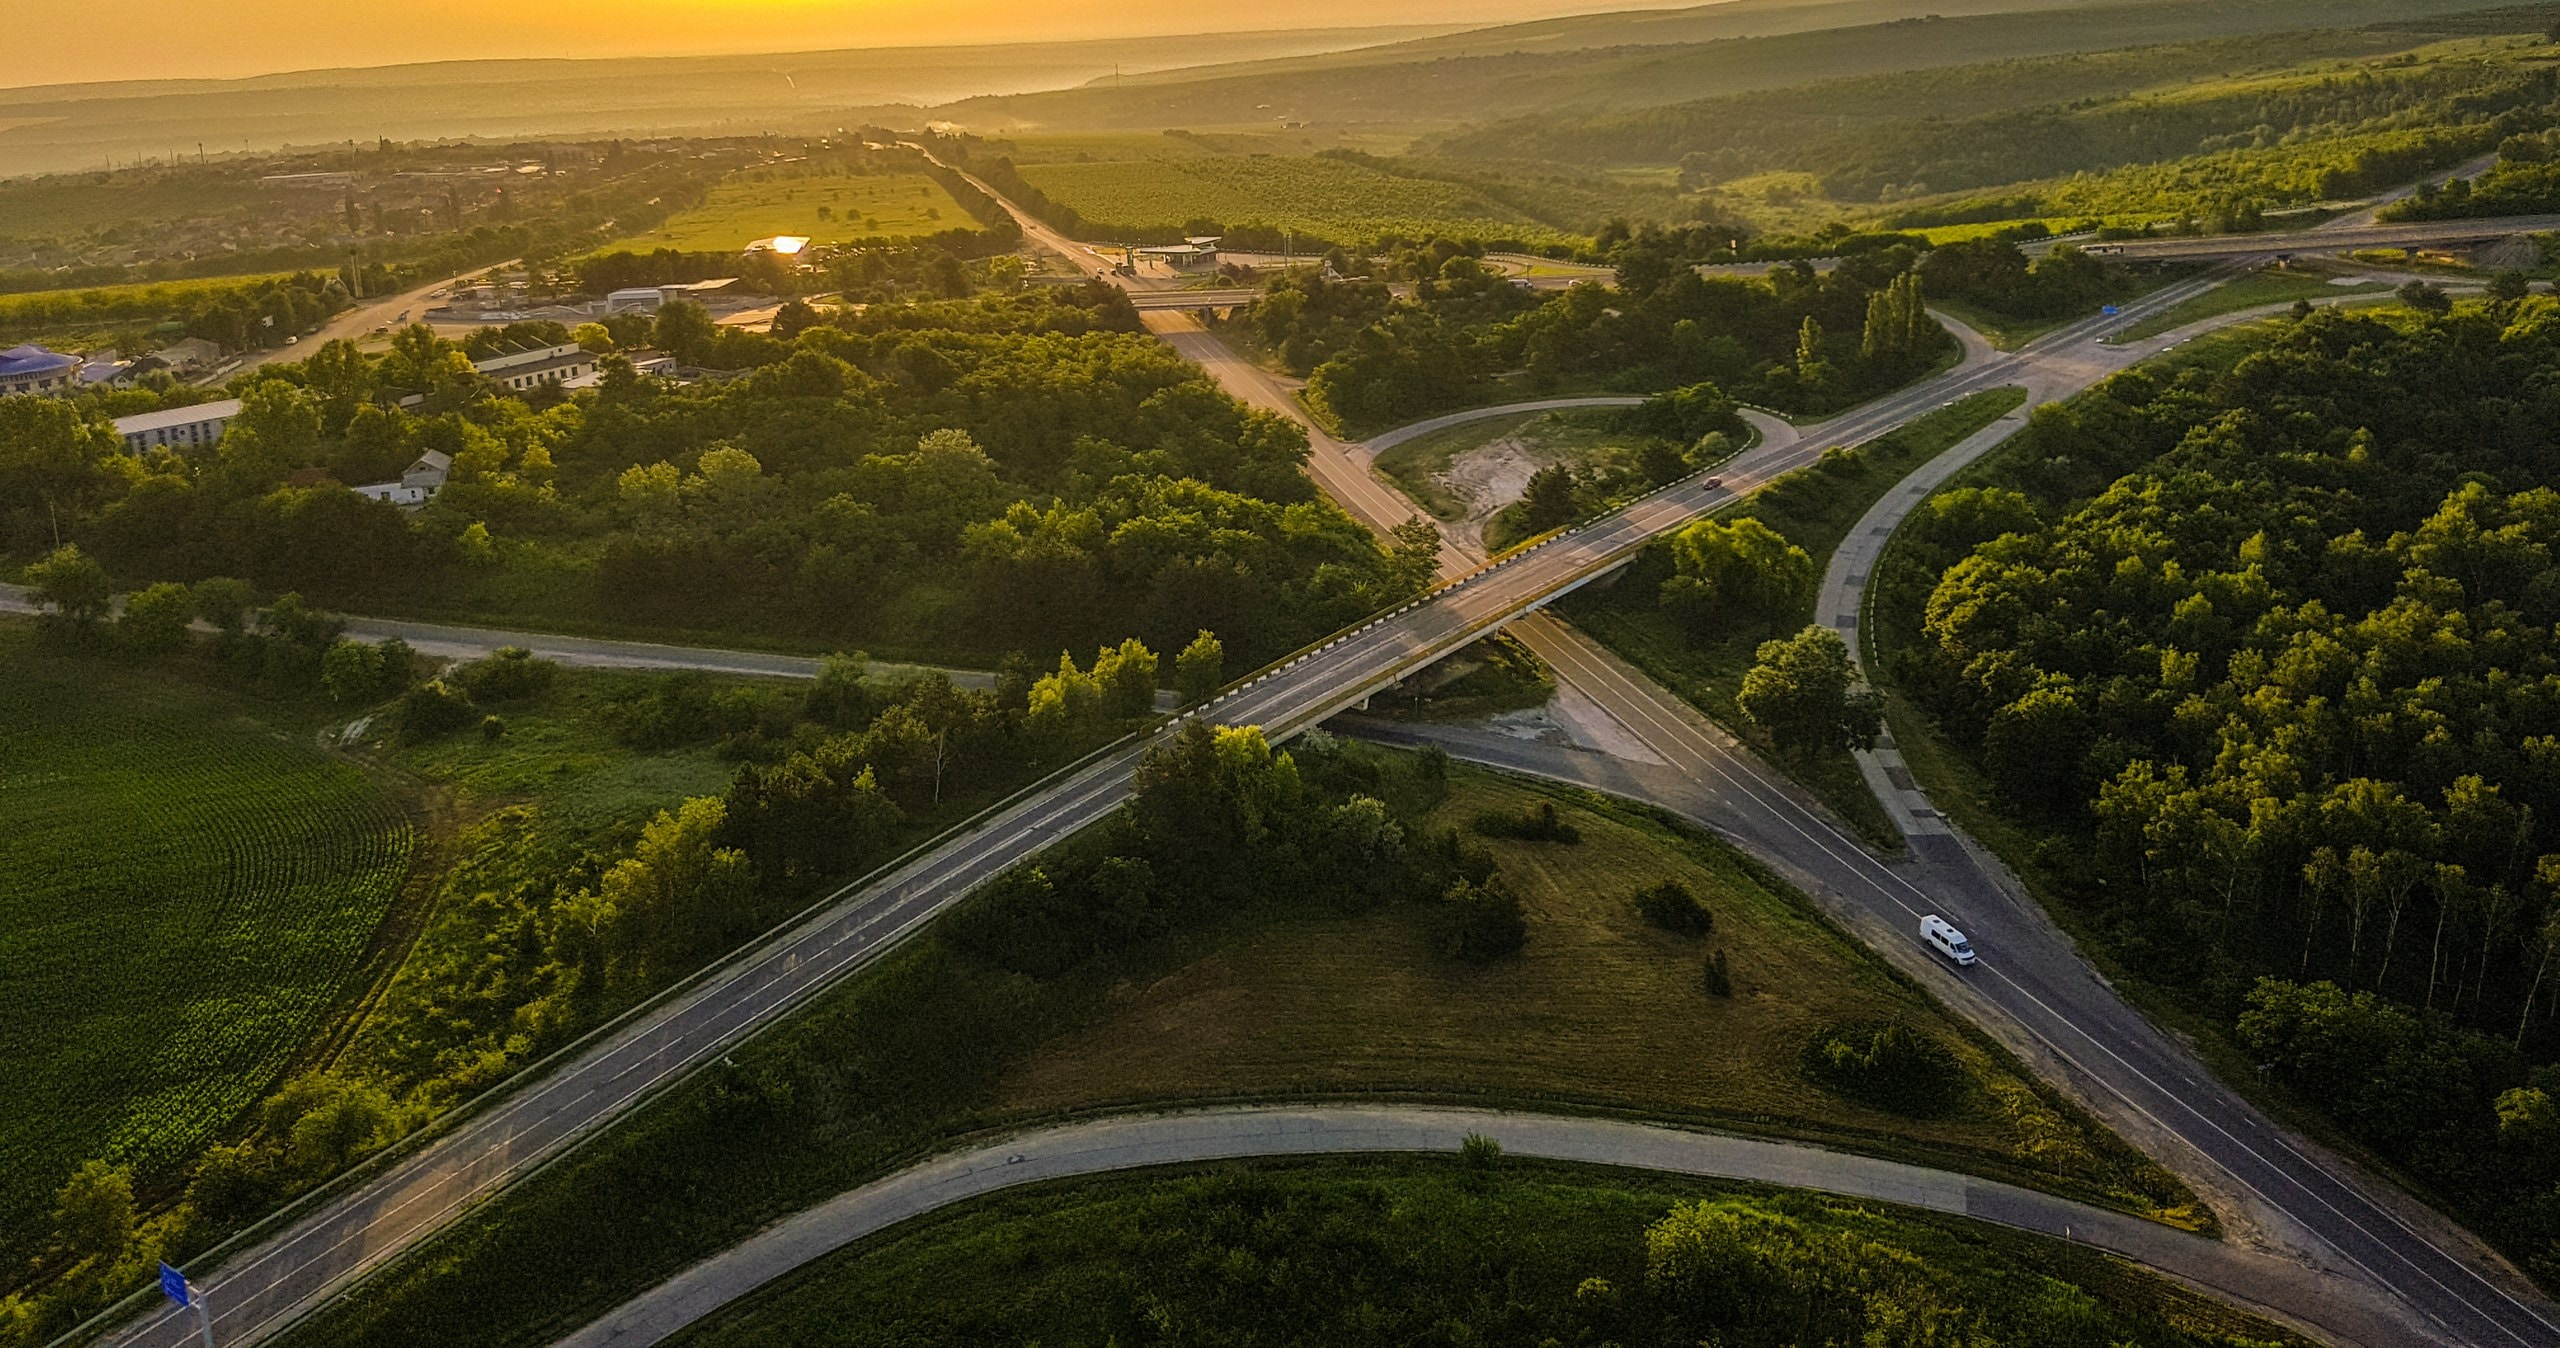 birds-eye view of road intersection